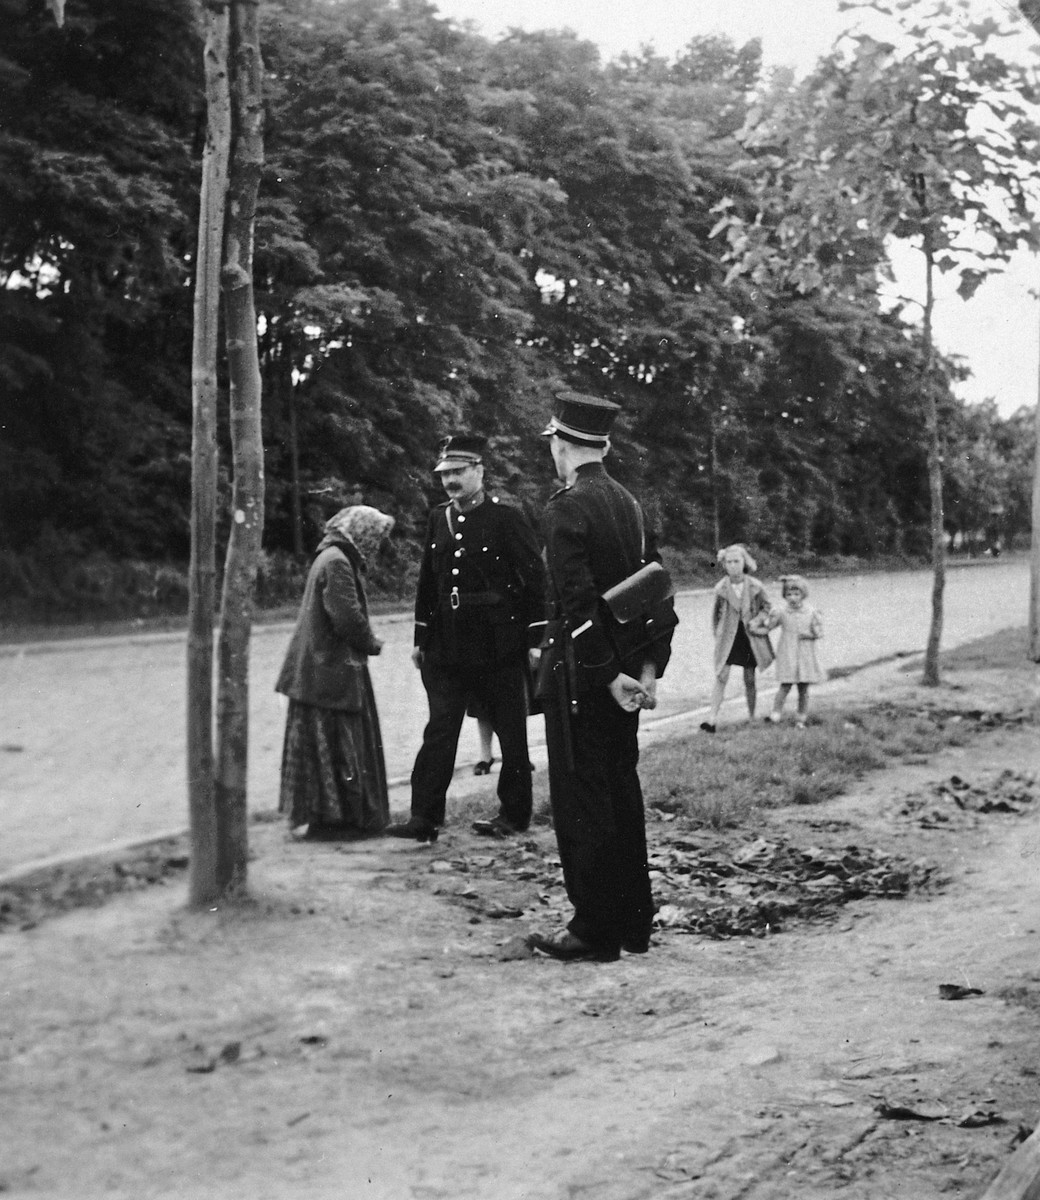 A Roma (Gypsy)? woman talks with two policemen alongside a road.